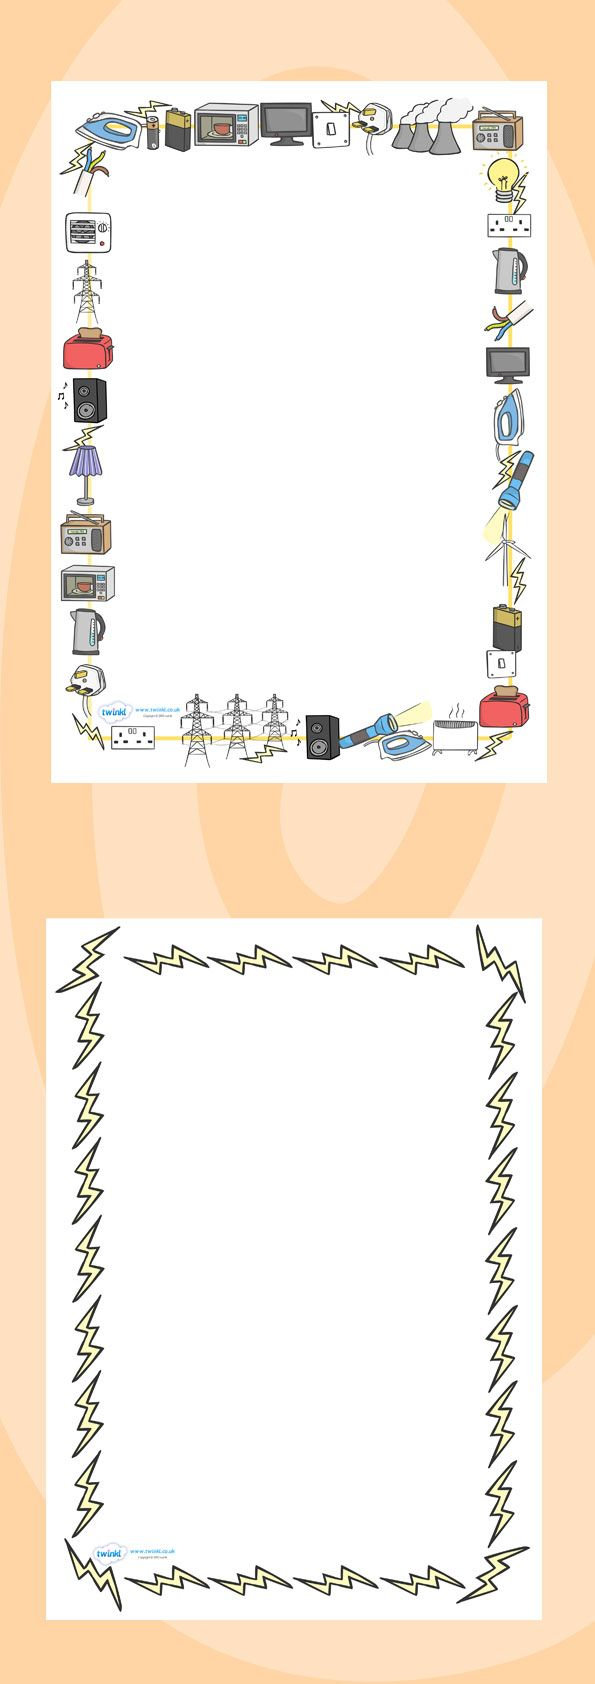 Little loops double page border free page borders - Twinkl Resources Electricity Page Borders Classroom Printables For Pre School